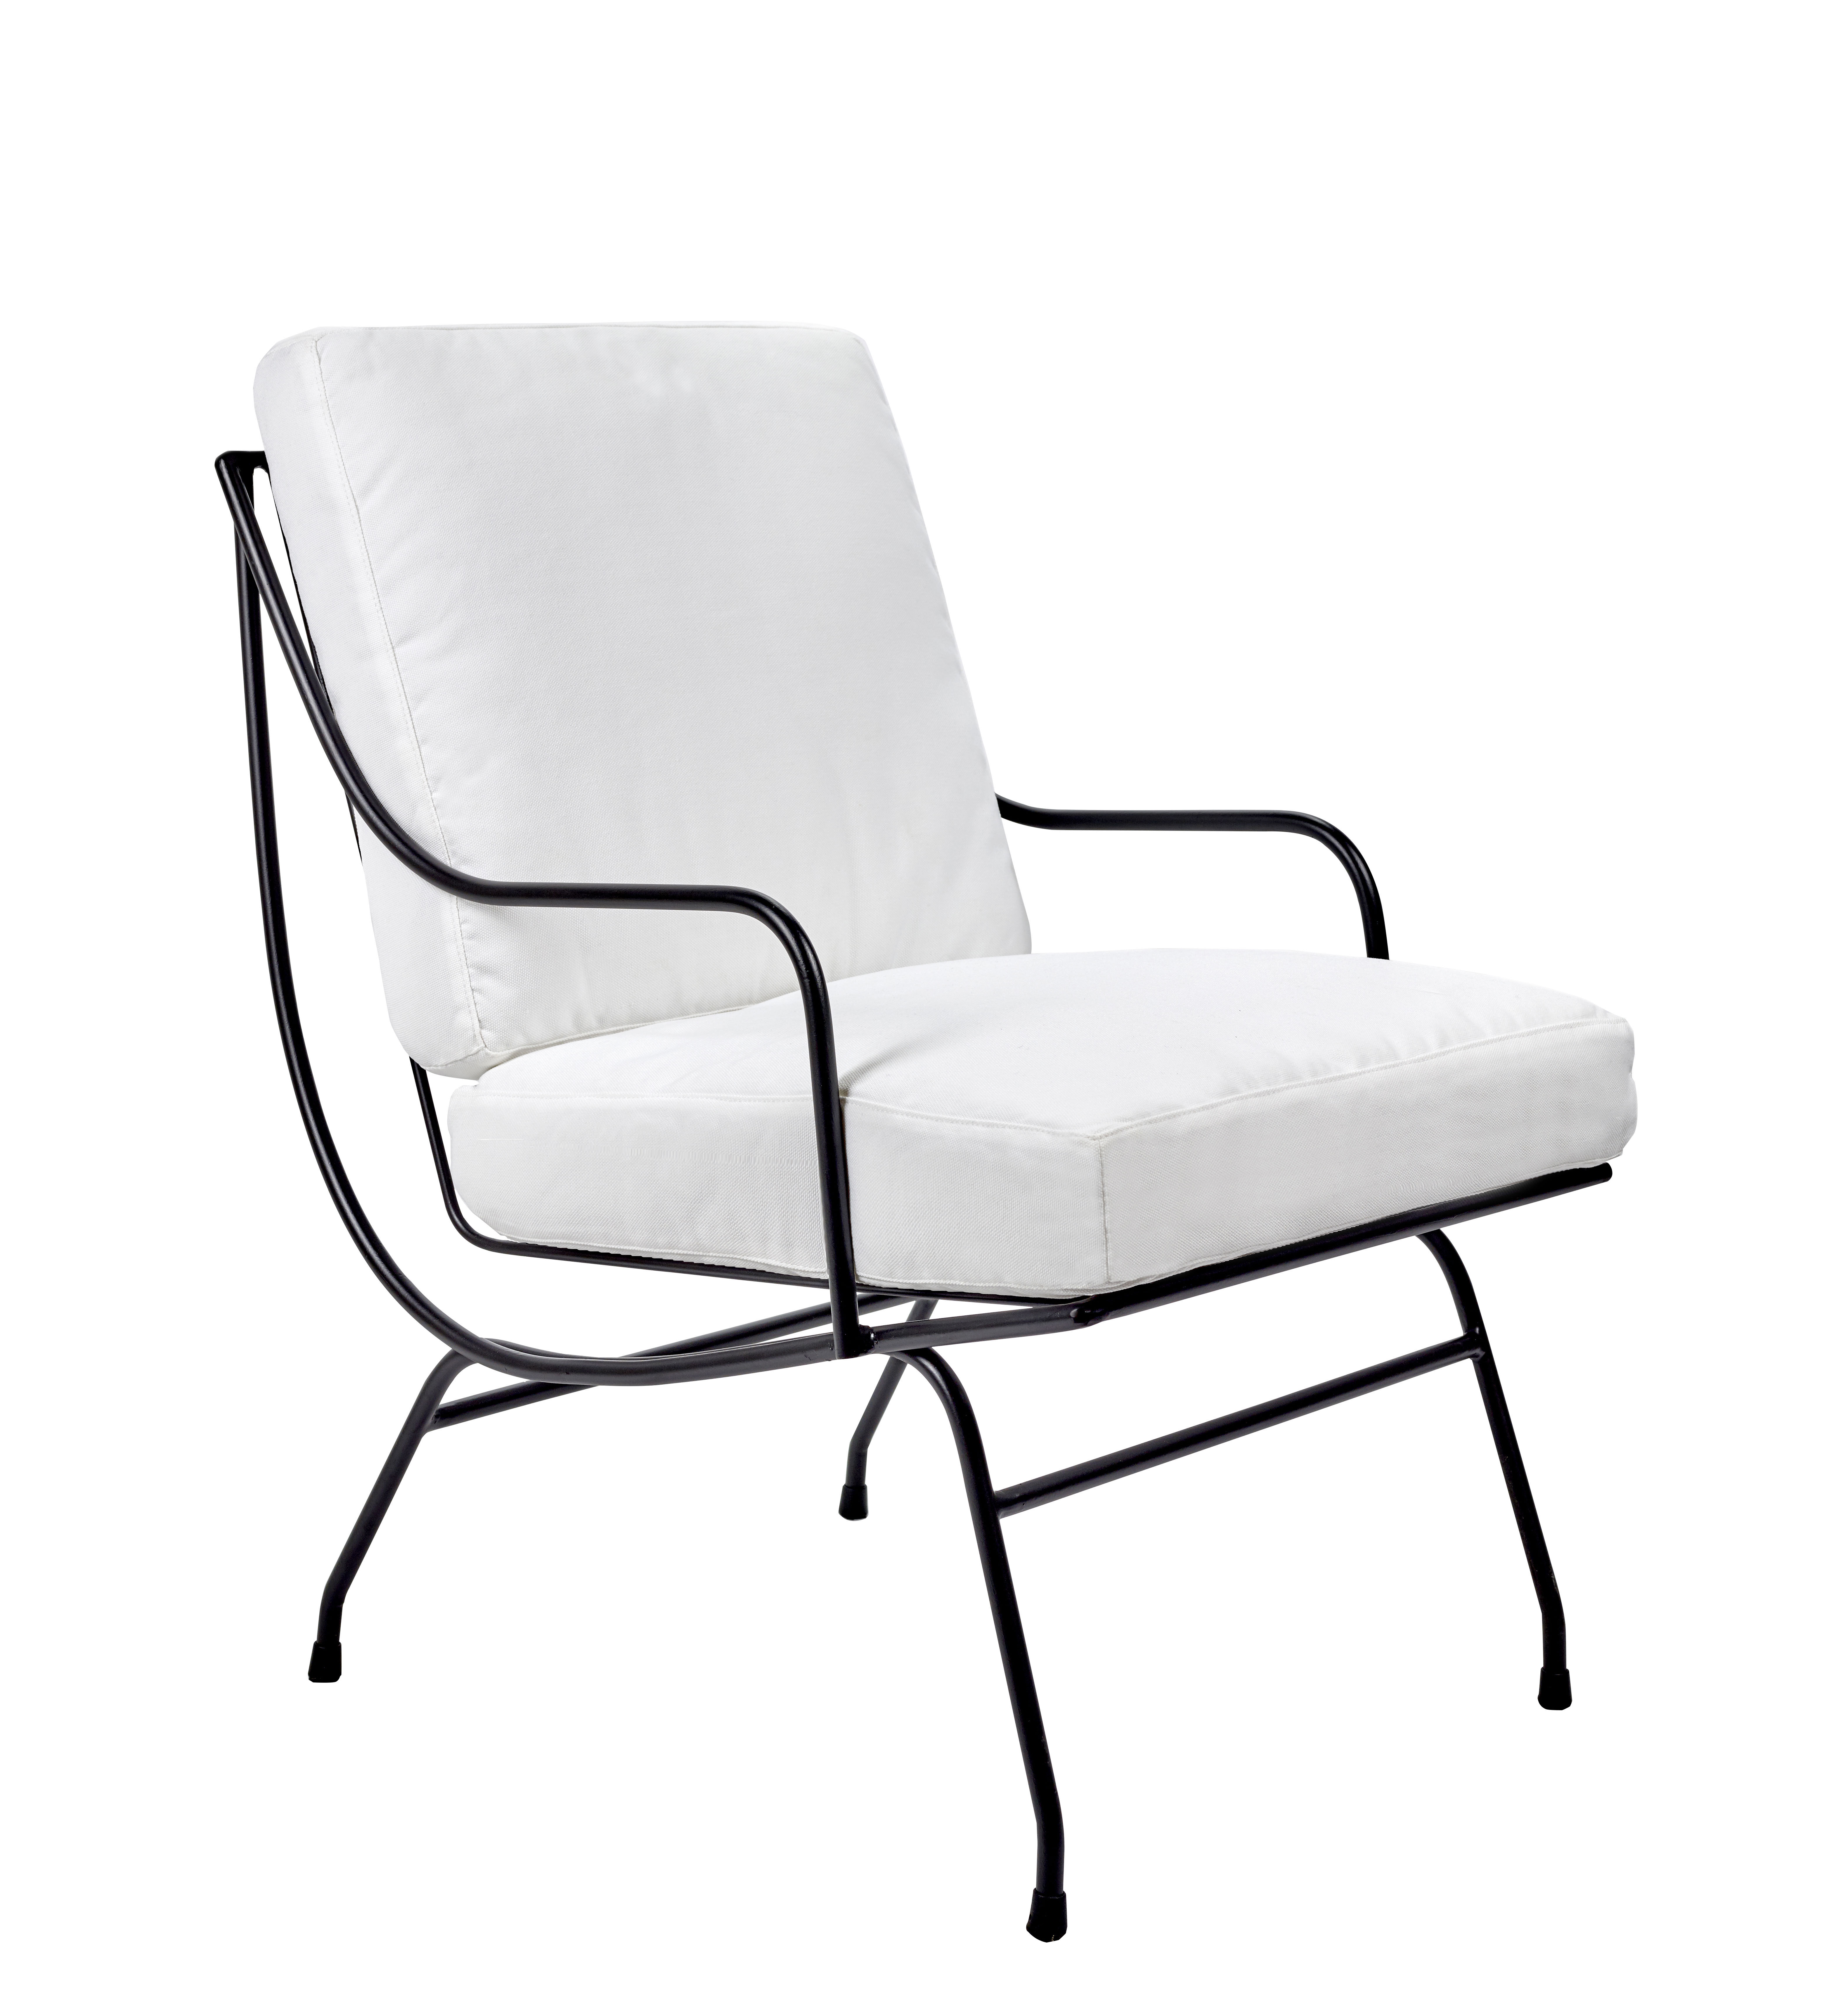 Low Armchair Stresa By Serax White Made In Design Uk